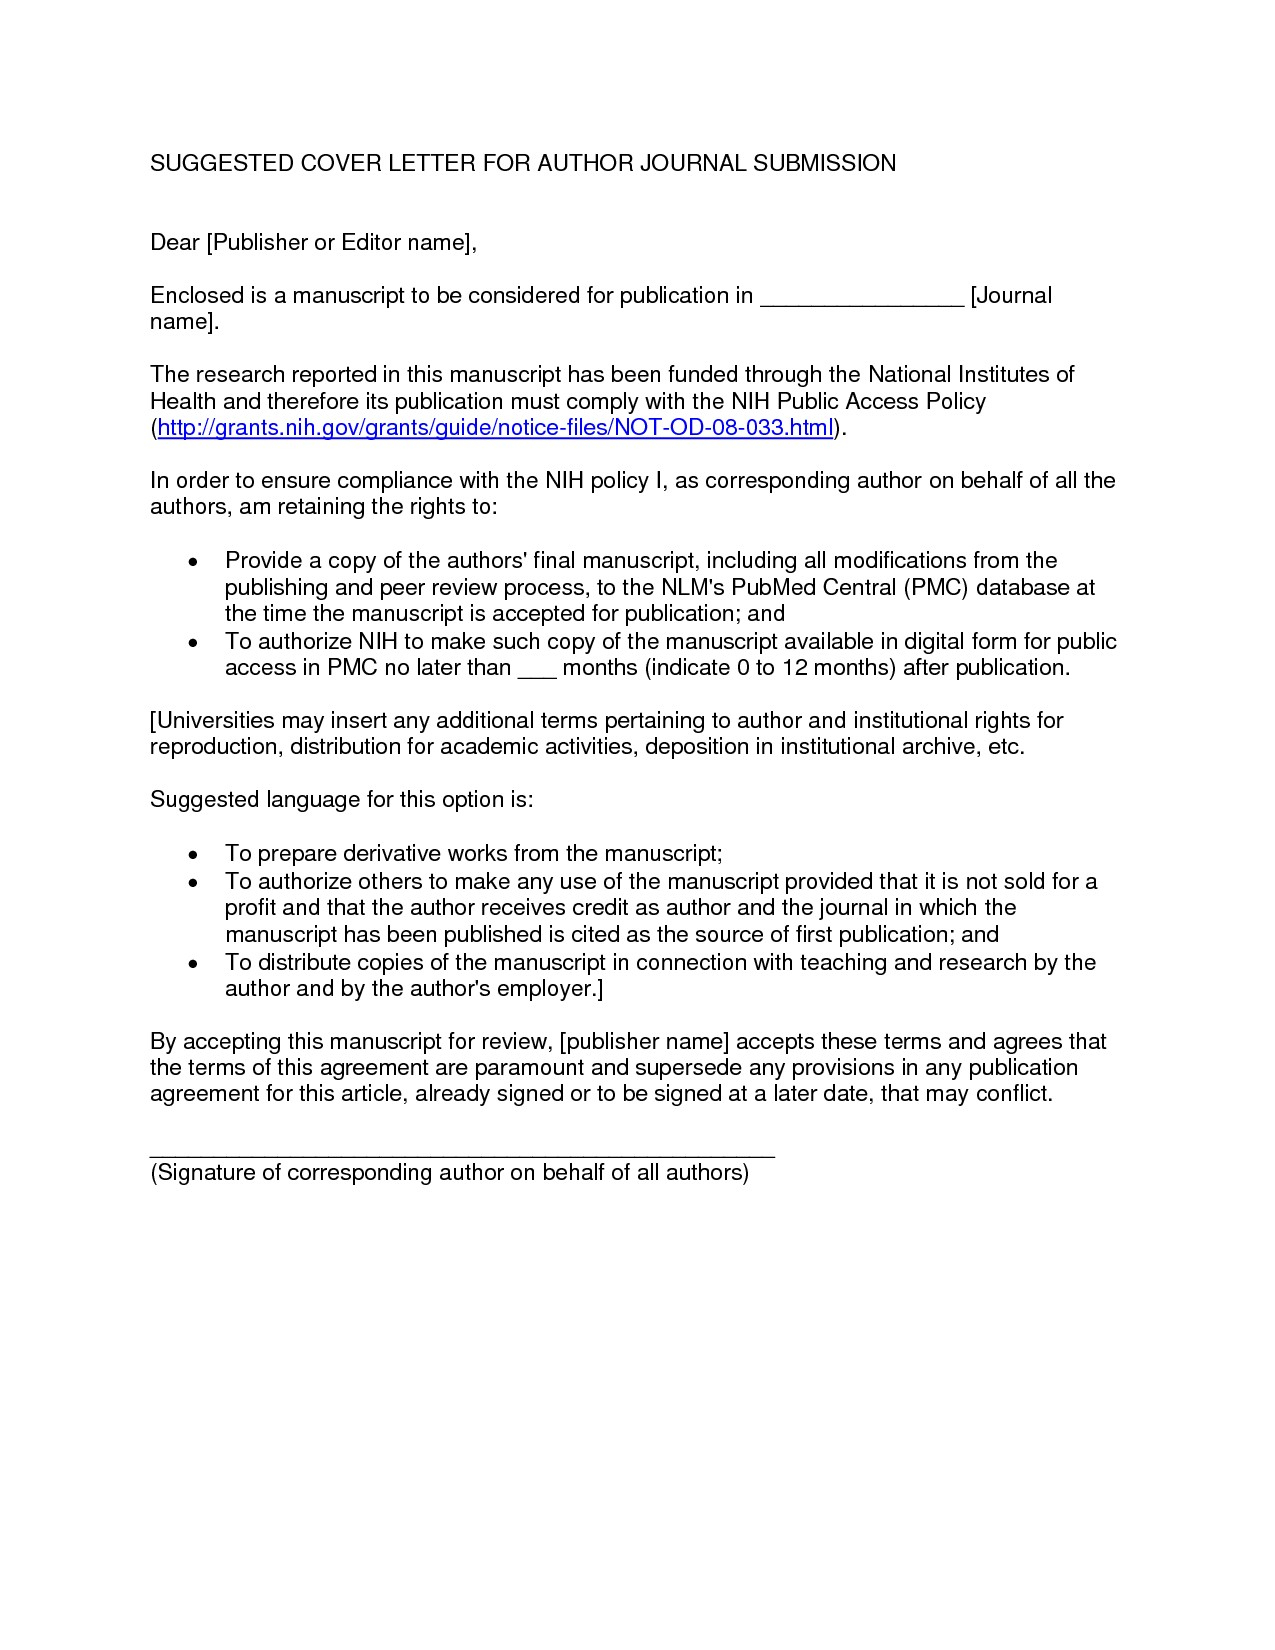 Pet Adoption Letter Template - Letter format with Thru